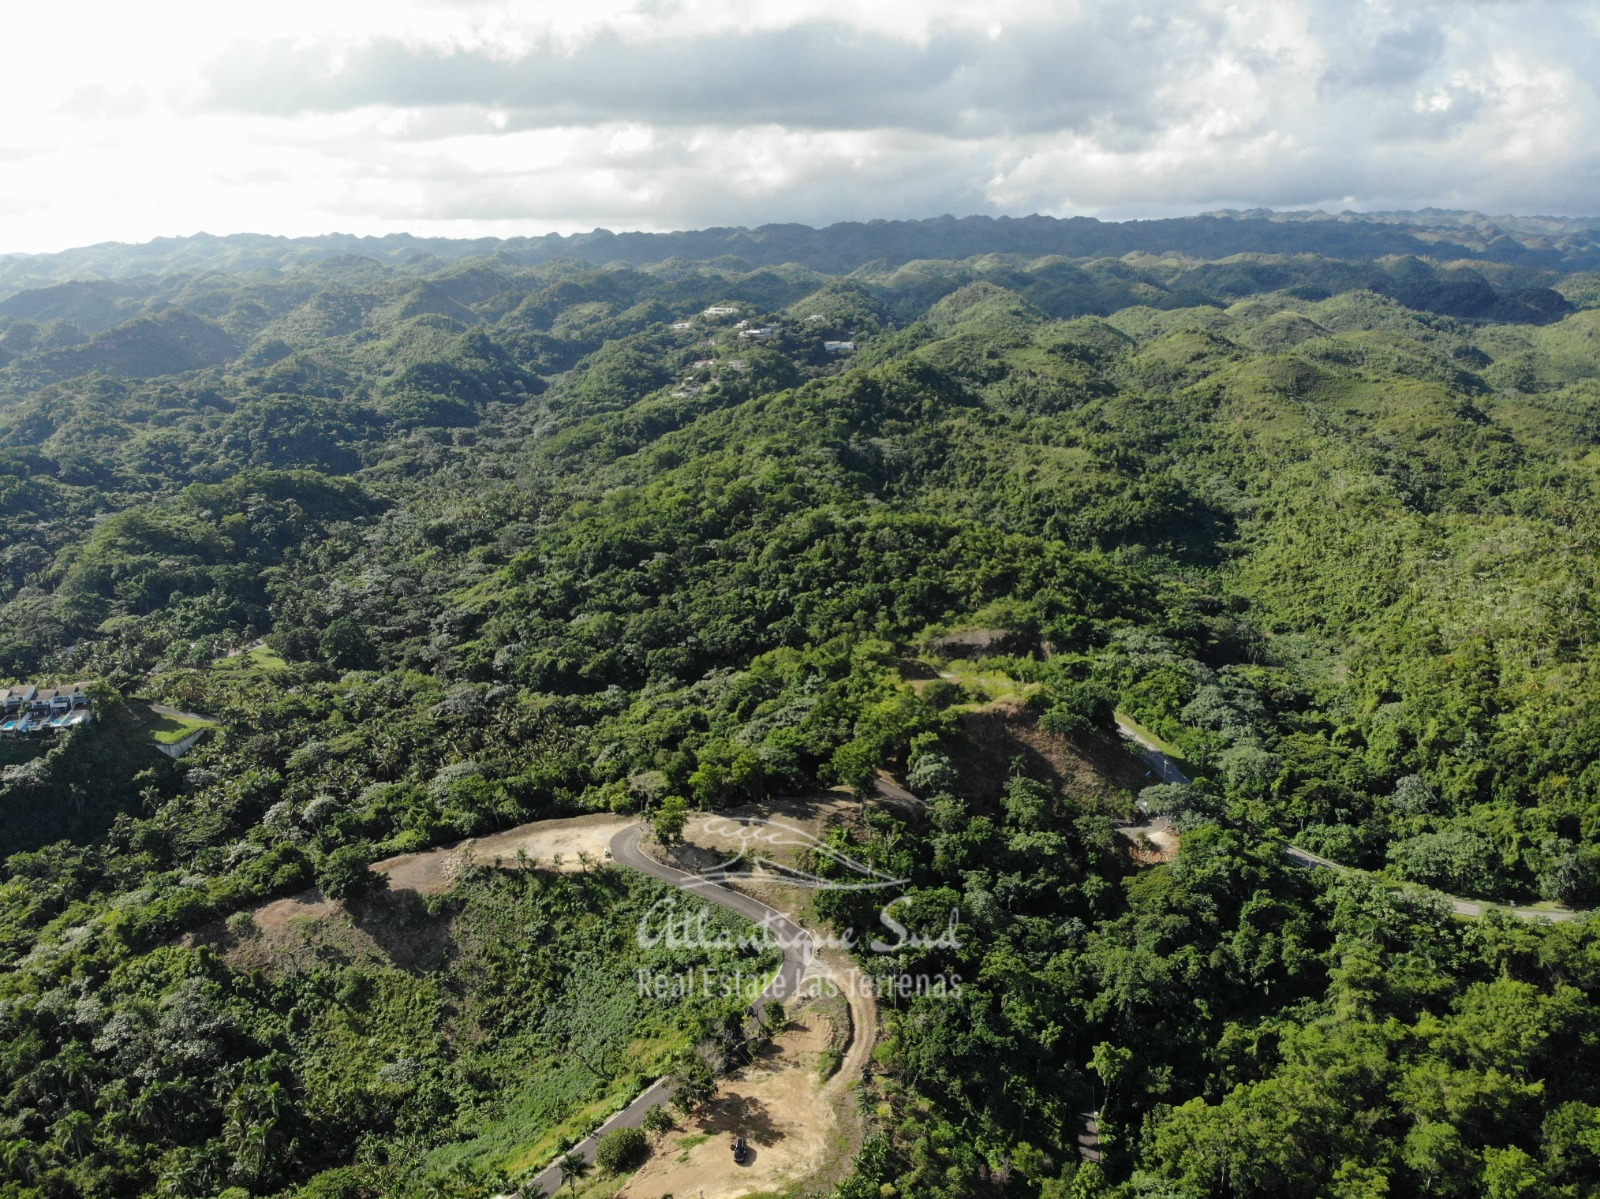 Land Lots for sale las terrenas samana16.jpeg